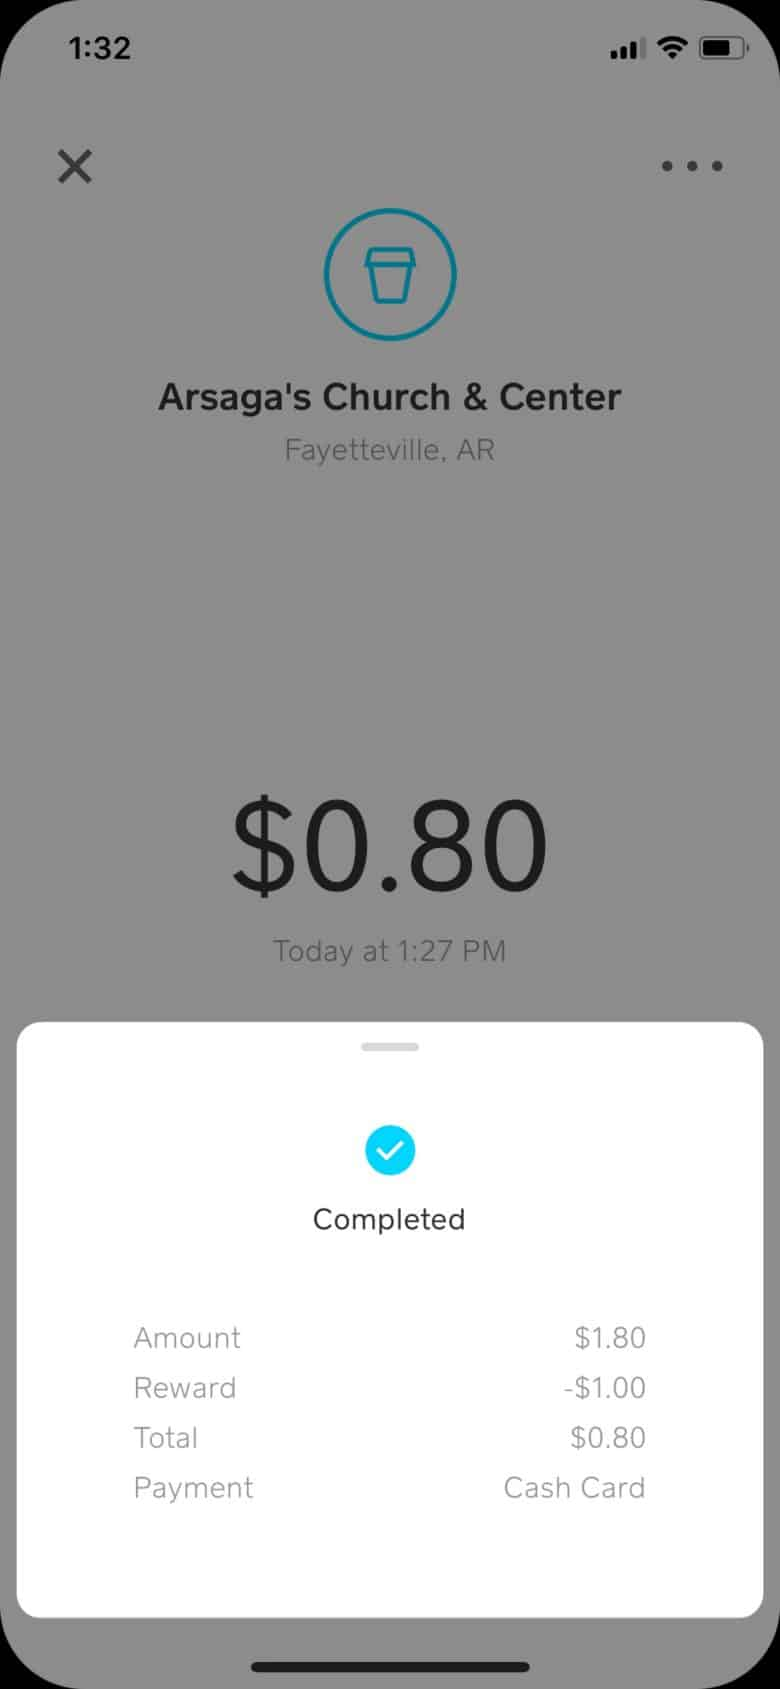 Just another $1 savings on a coffee with the Square Cash App.